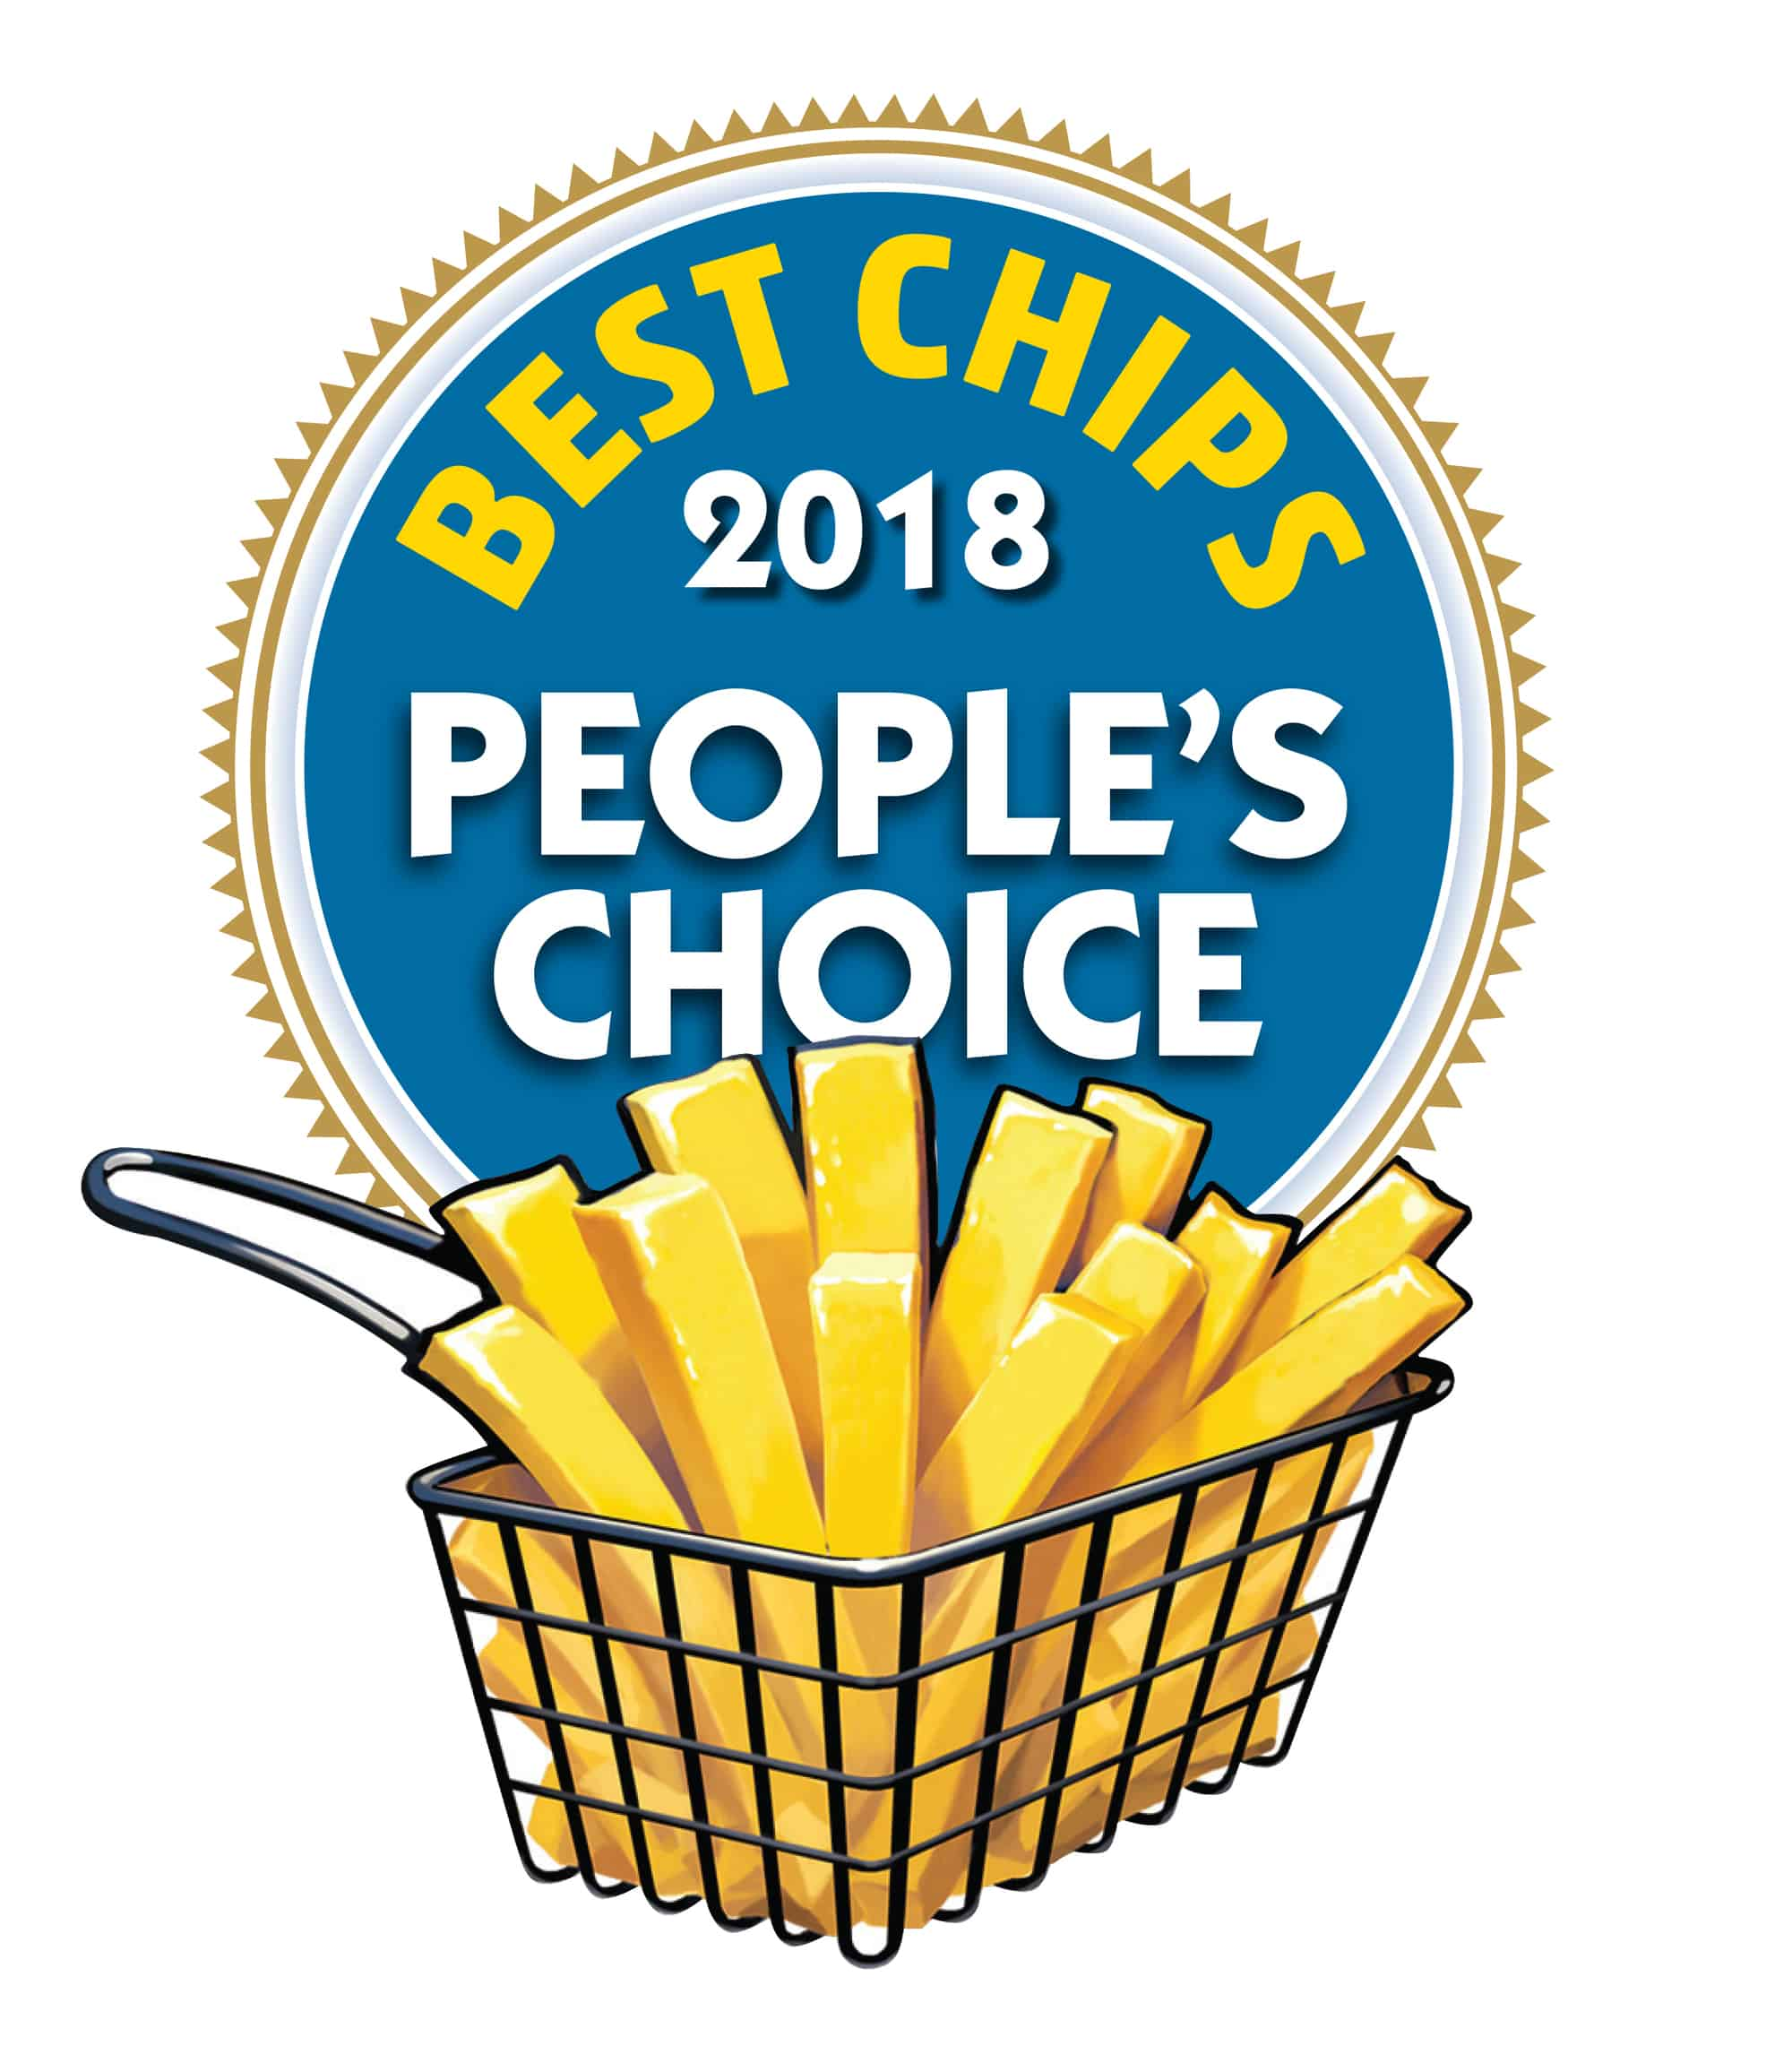 People's Choice 2018